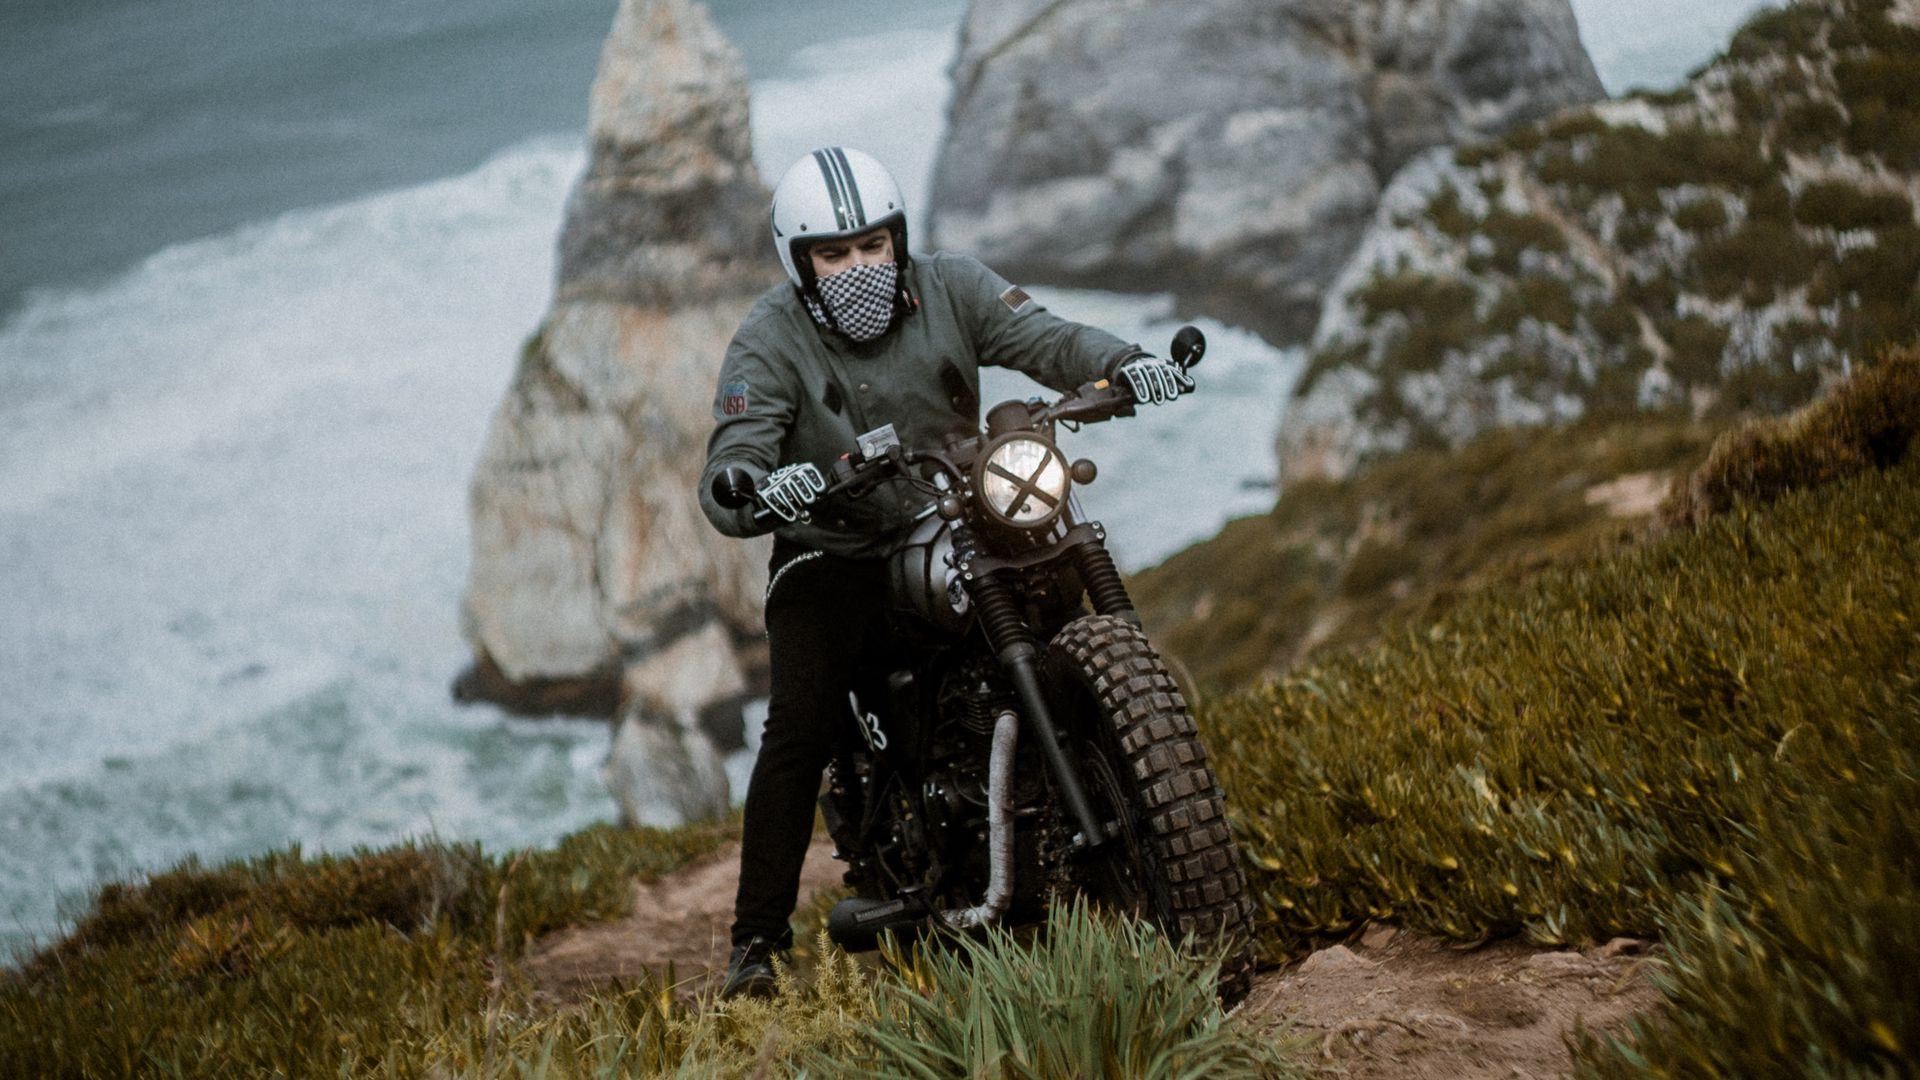 Motorcyclist, Motorcycle, Download Free HD Wallpapers